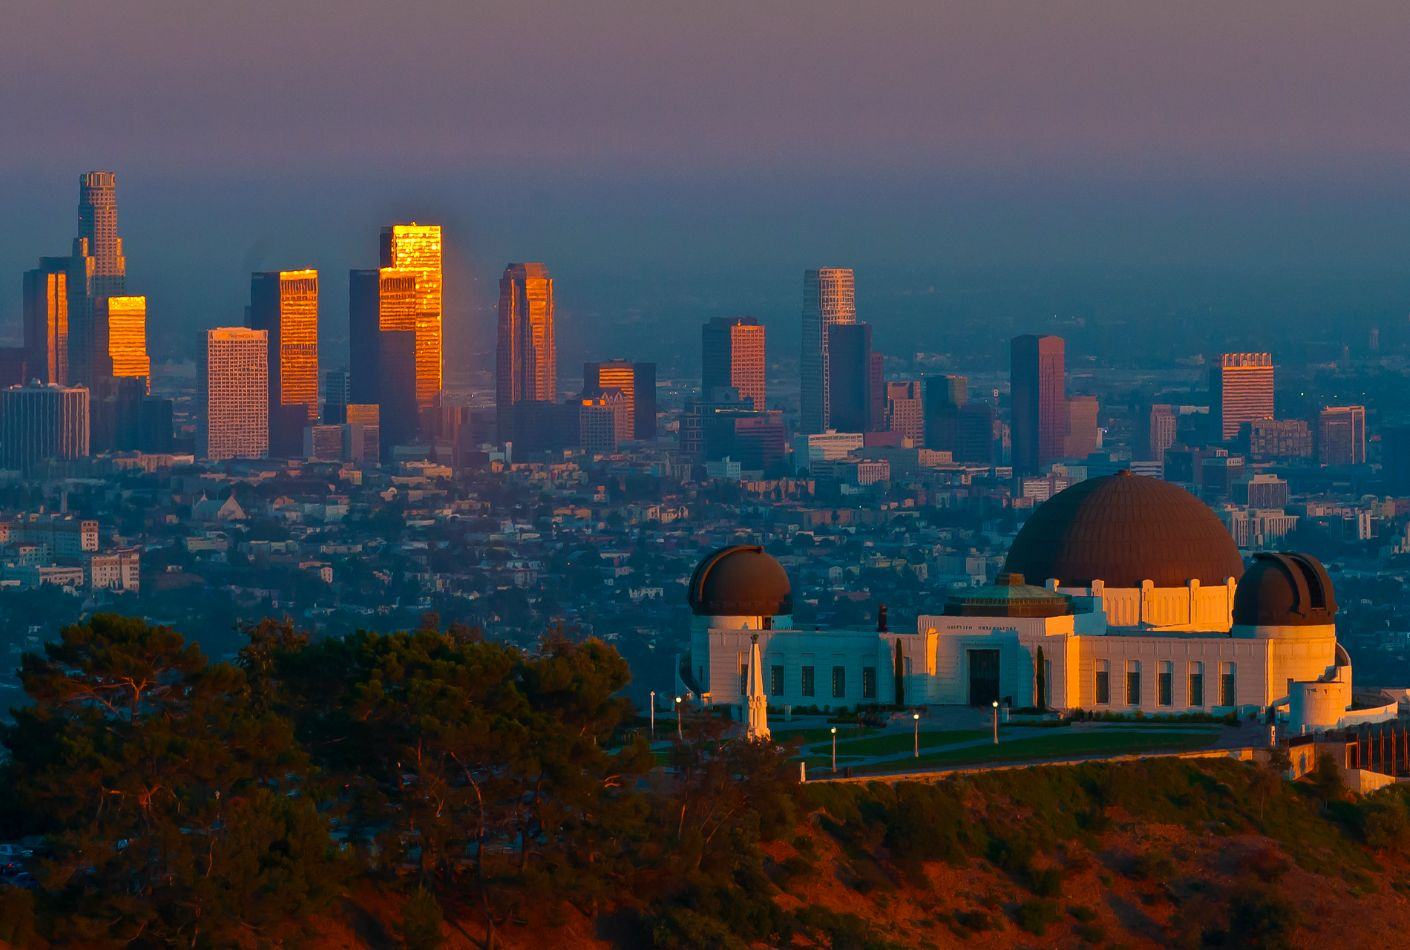 Observatorio de Griffith y Los Angeles. Oferta viaje Estados Unidos.